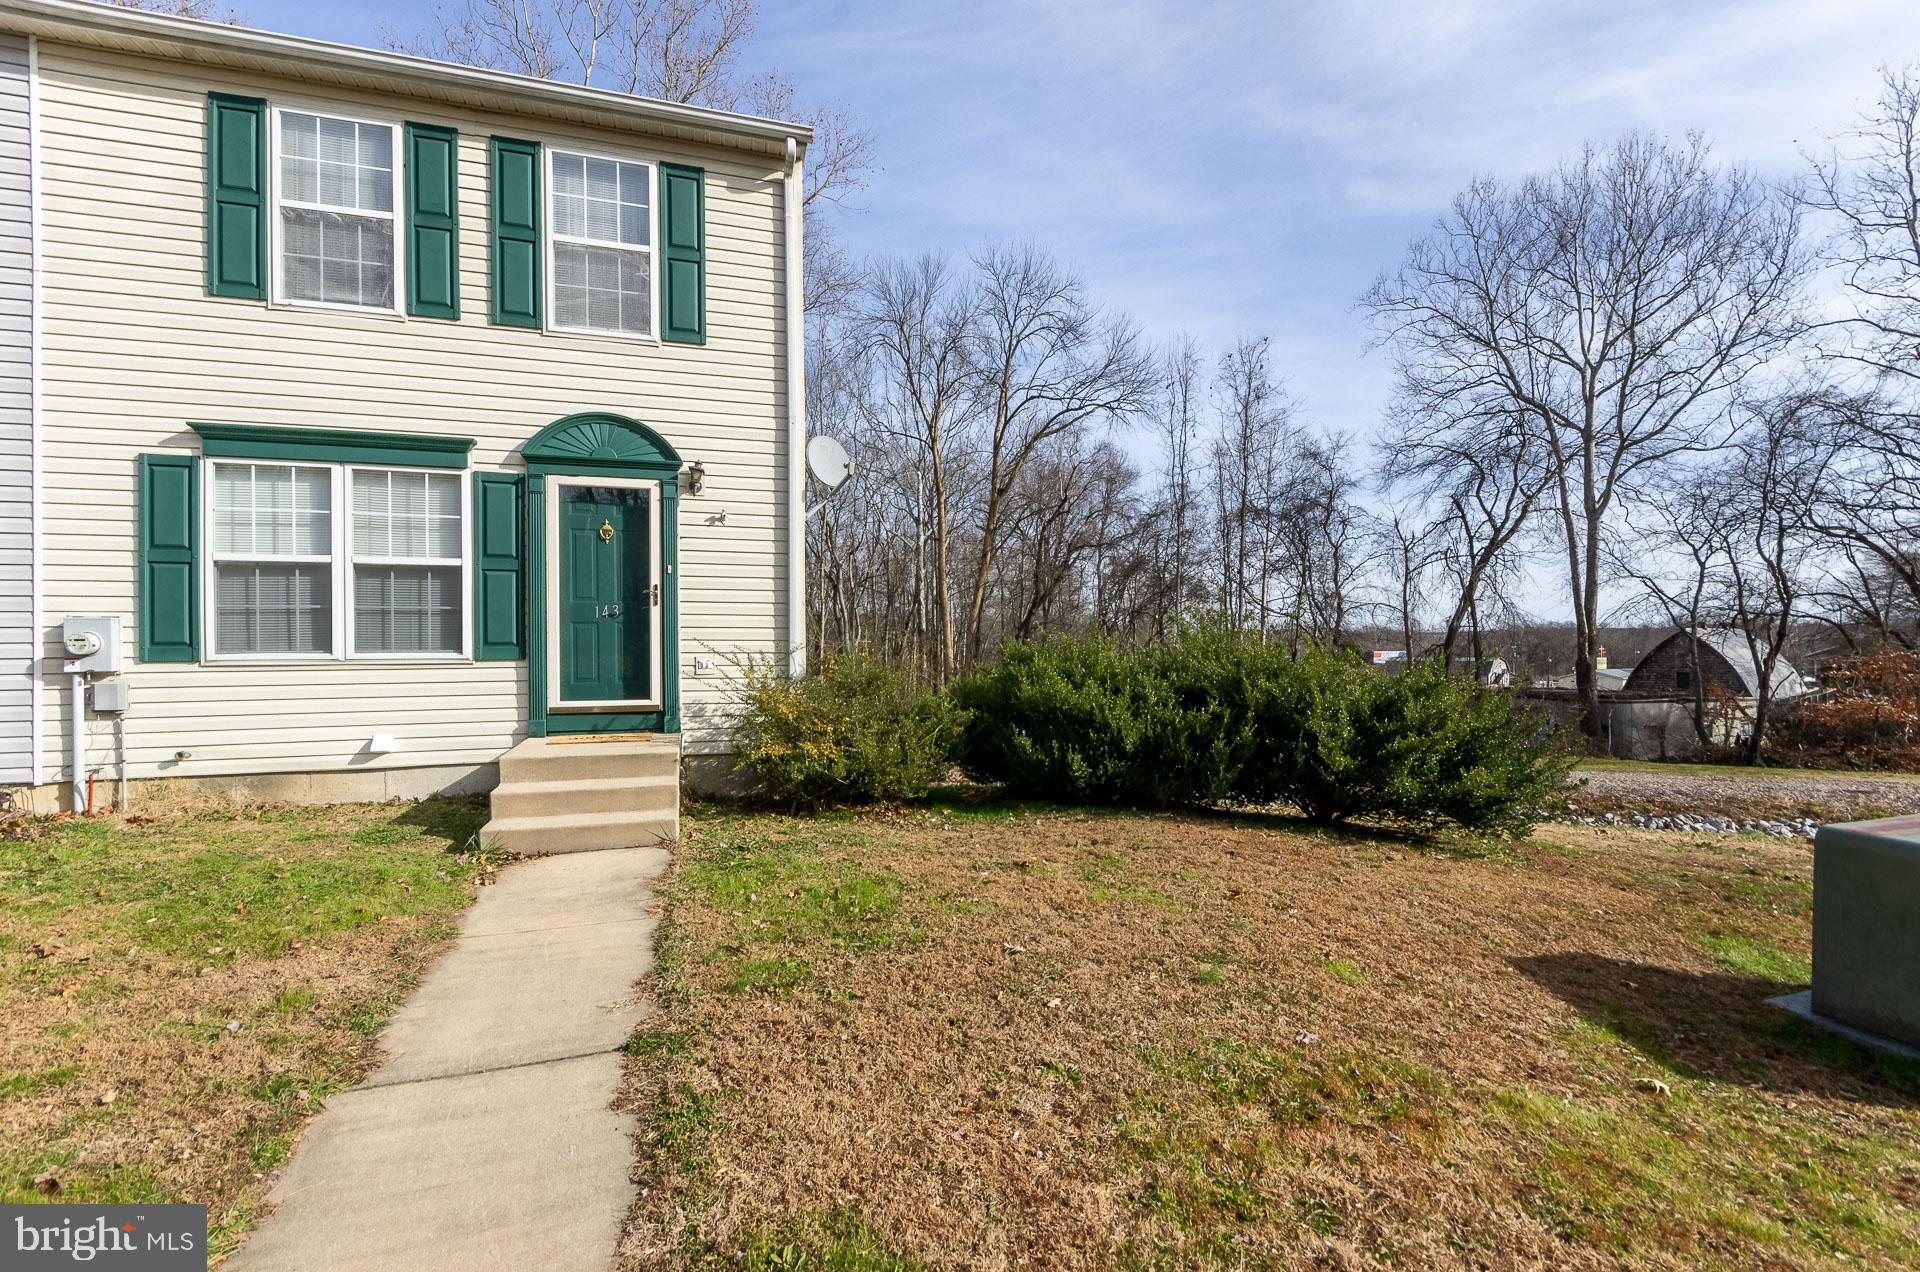 USDA ELIGIBLE! Don't miss this one! This spacious end-unit has been very well maintained! Updates in